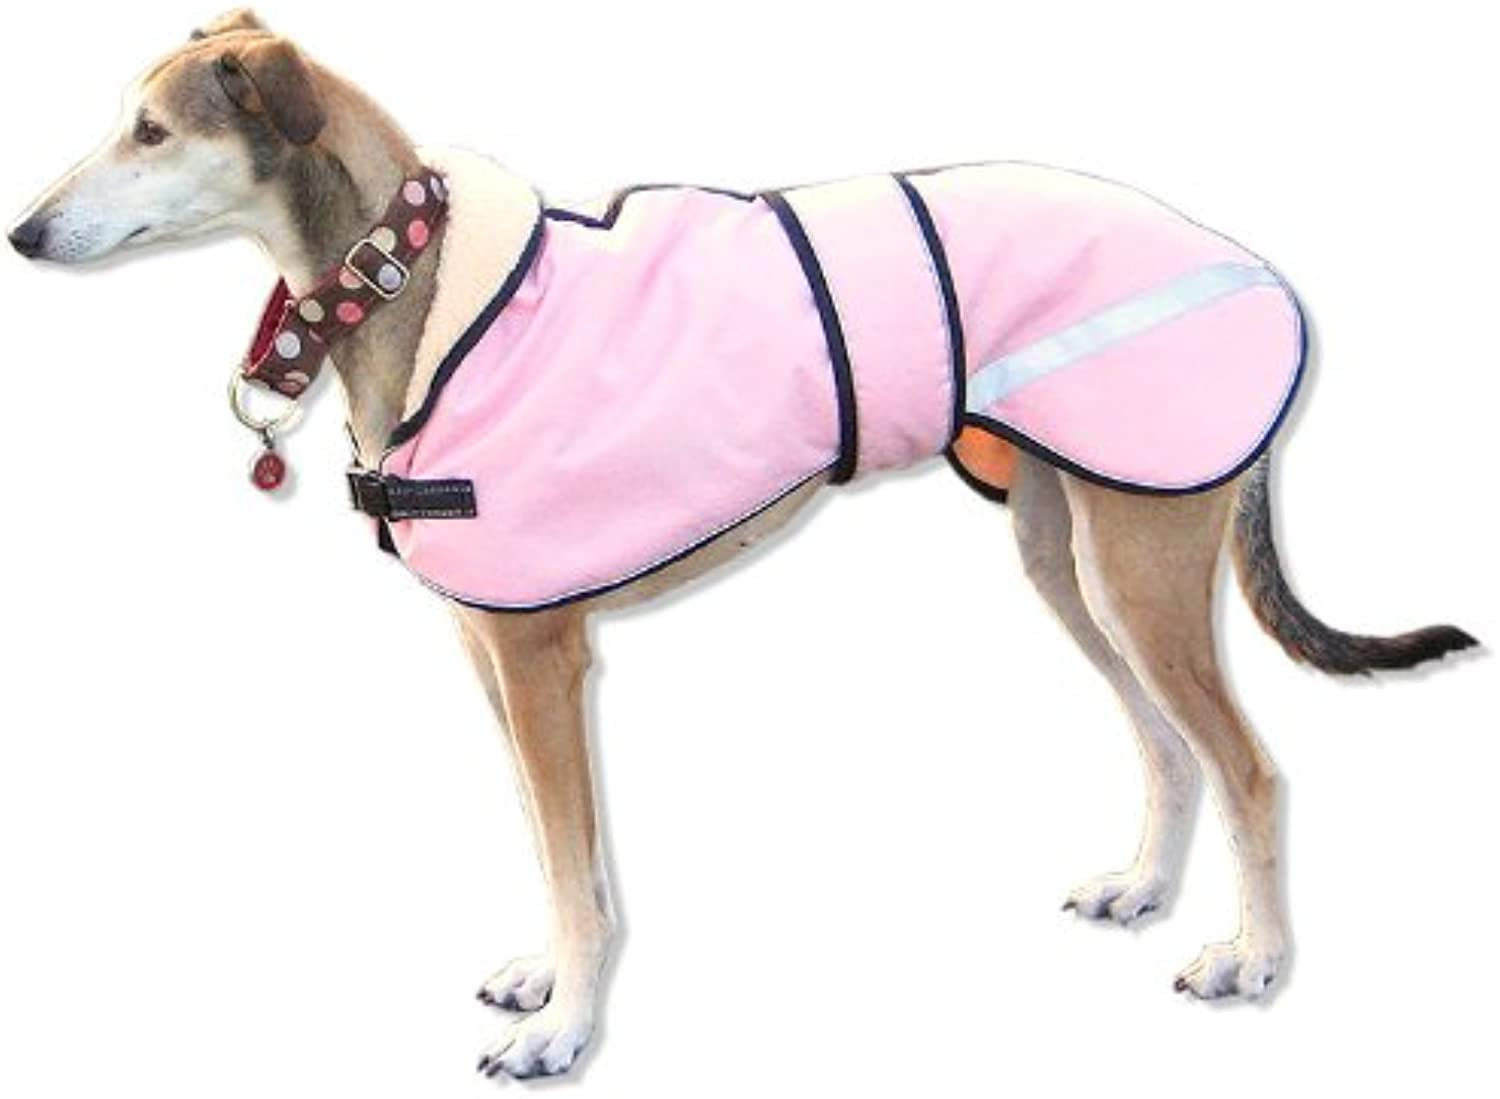 Kellings Dog Coats Starbright Greyhound Lurcher Coat with Reflective strips and piping (Medium 2830in, Baby Pink)